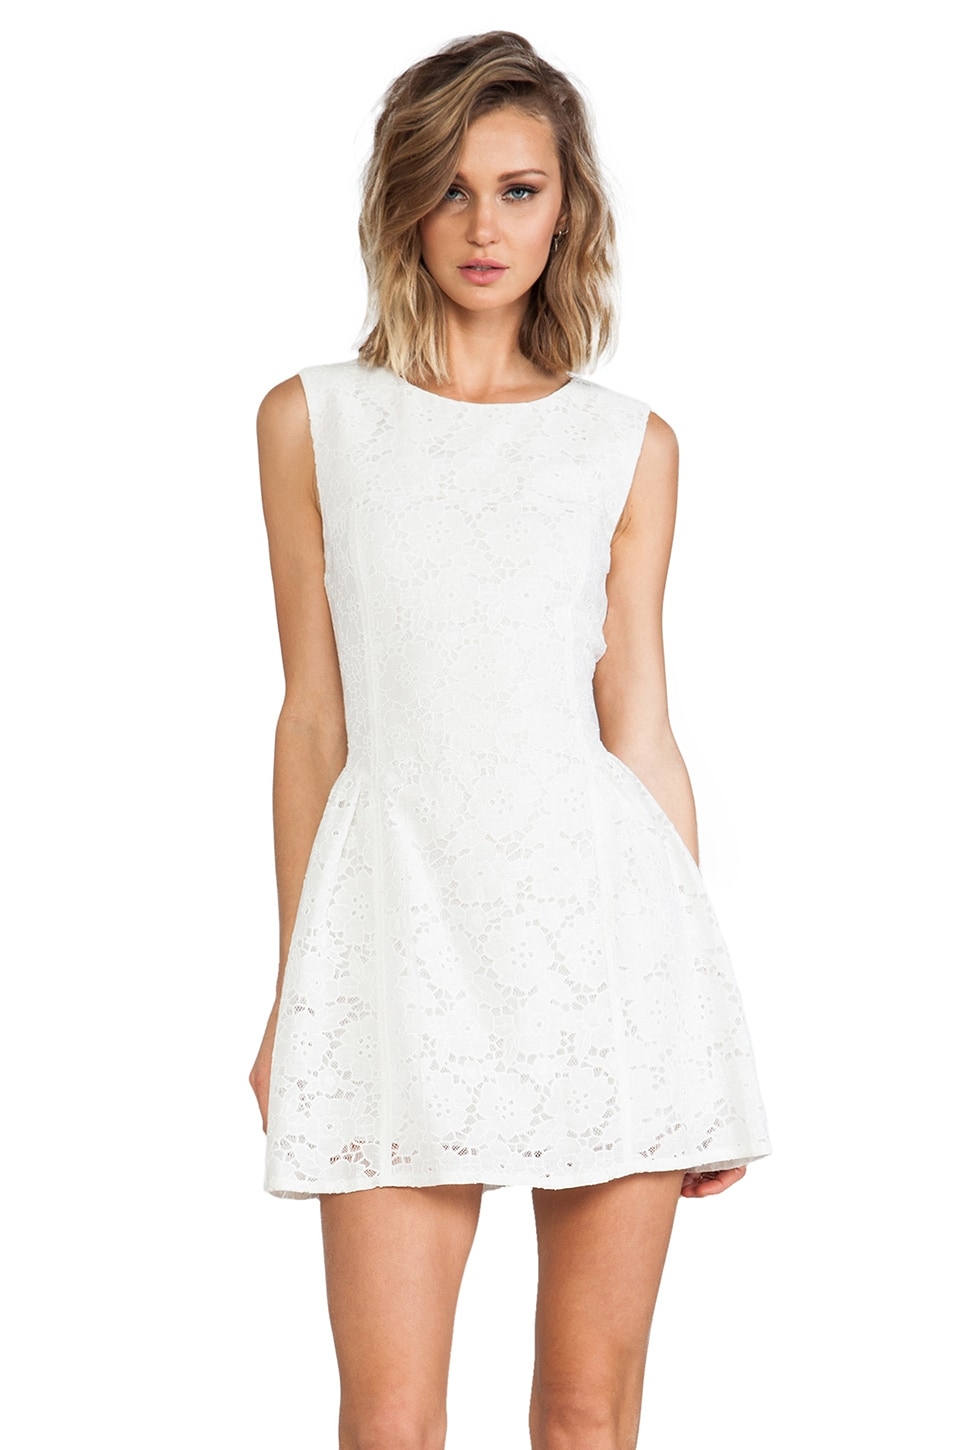 MINKPINK Sister Savior Lace Dress in White